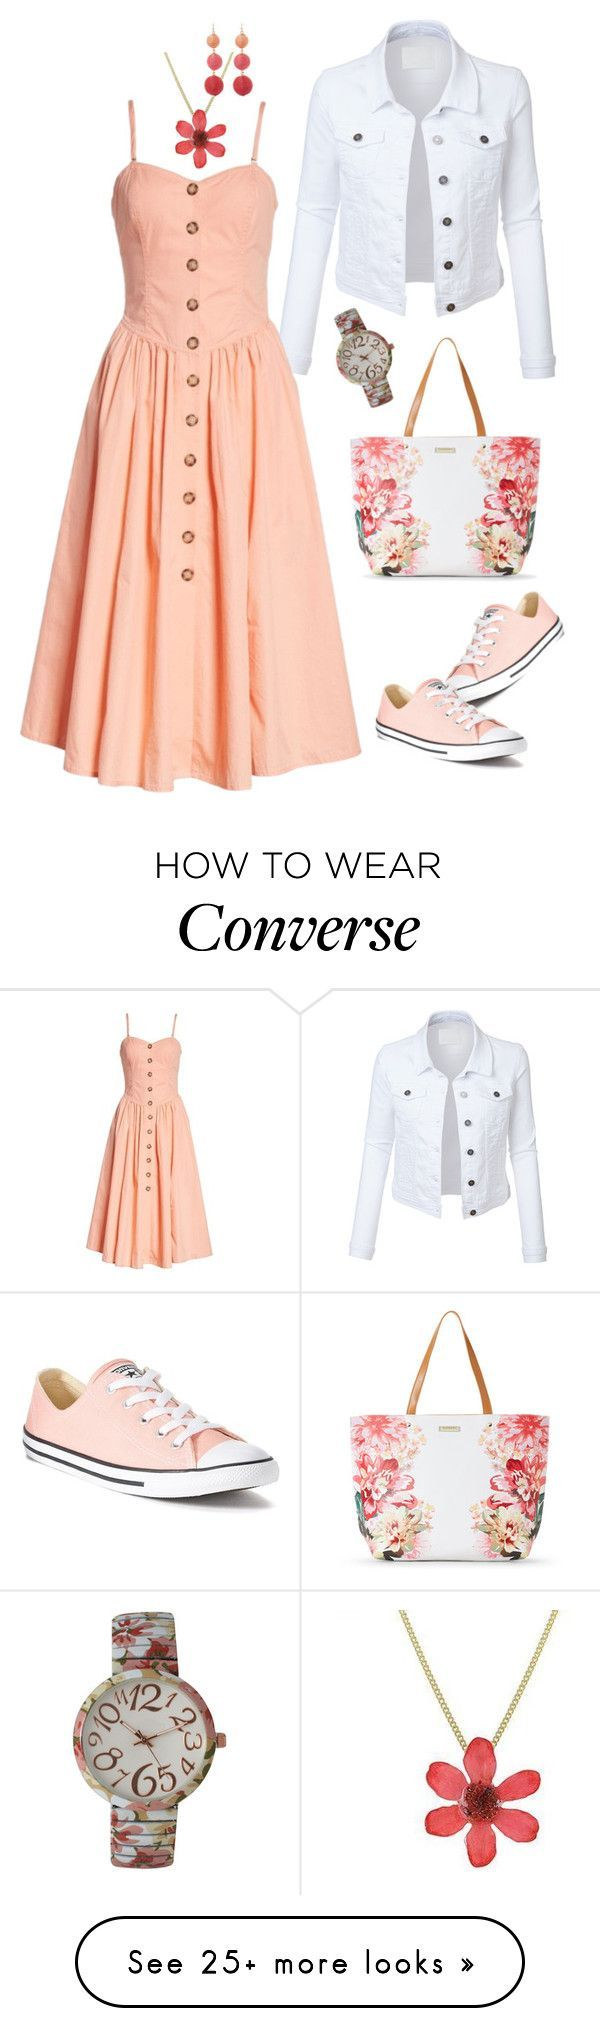 """""""Geen titel #859"""" by miriam-witte on Polyvore featuring LE3NO, Free People, Converse, Tahari, NOVICA, Kenneth Jay Lane and Olivia Pratt #swagoutfits"""